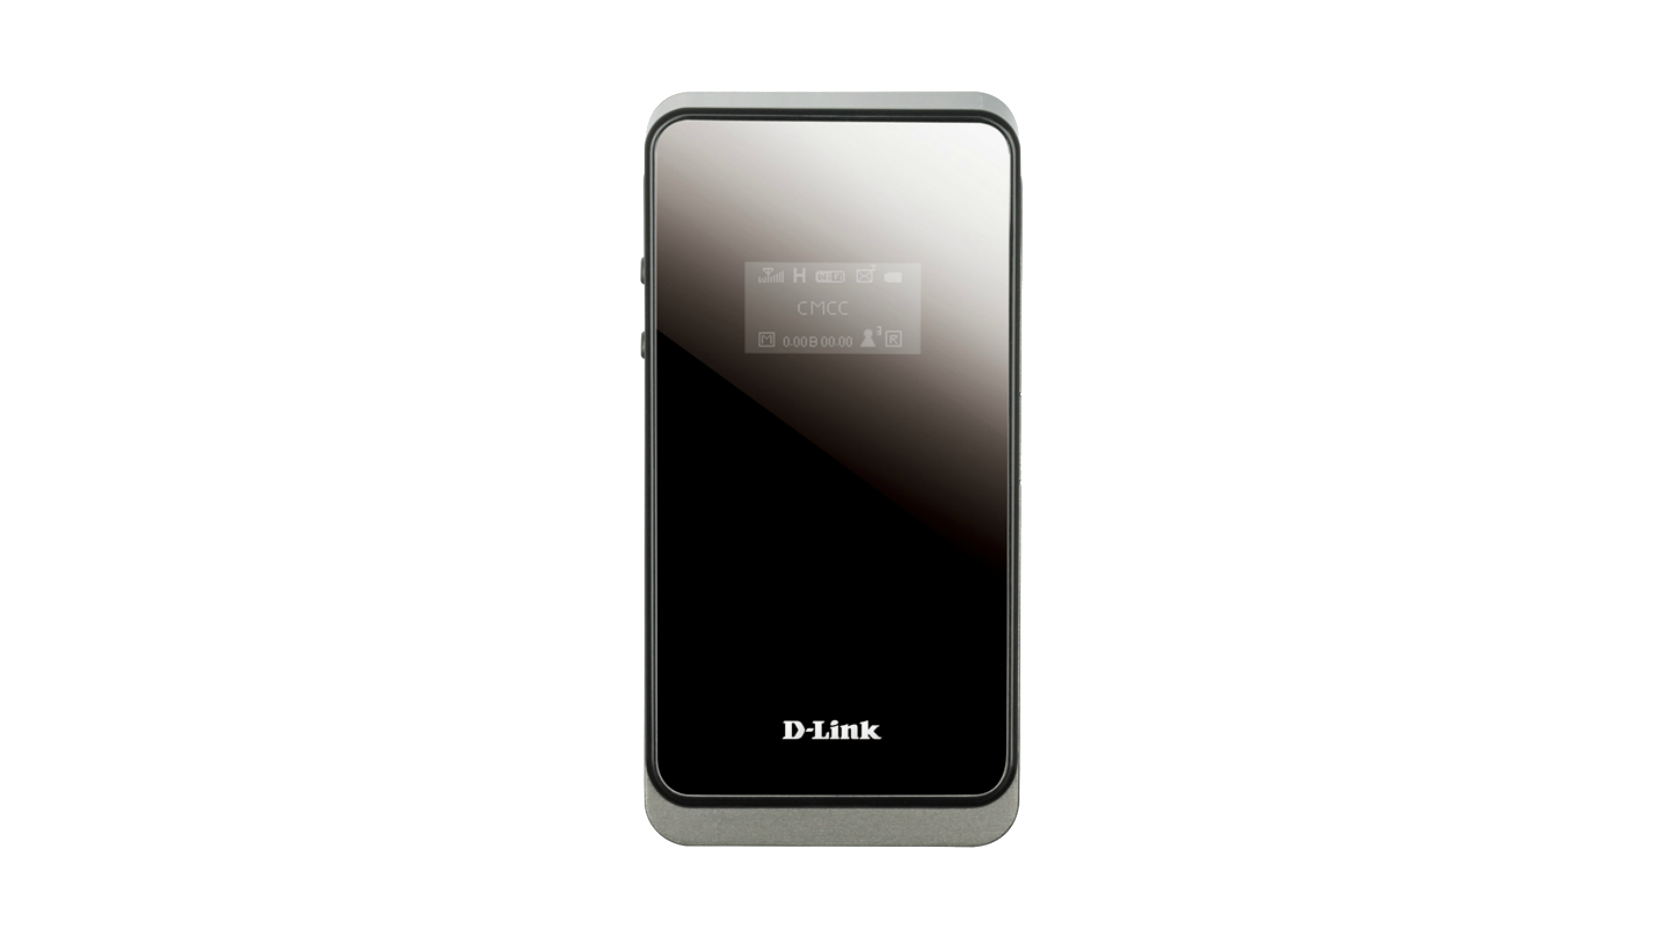 D-LINK DWR-730 ROUTER DRIVERS UPDATE